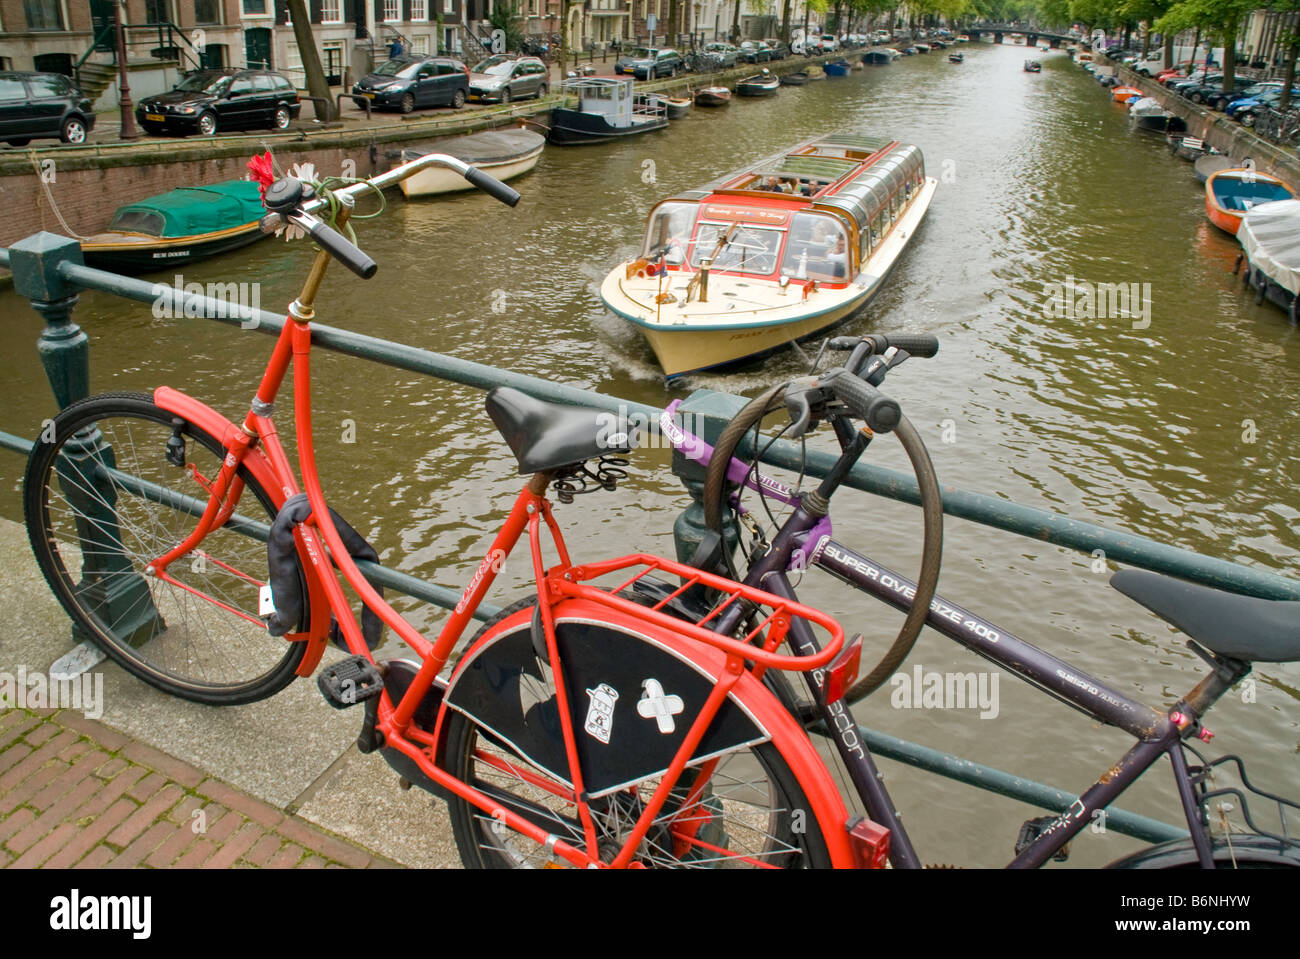 Amsterdam bikes locked to bridge with sightseeing cruise boat in Prinsengracht canal - Stock Image